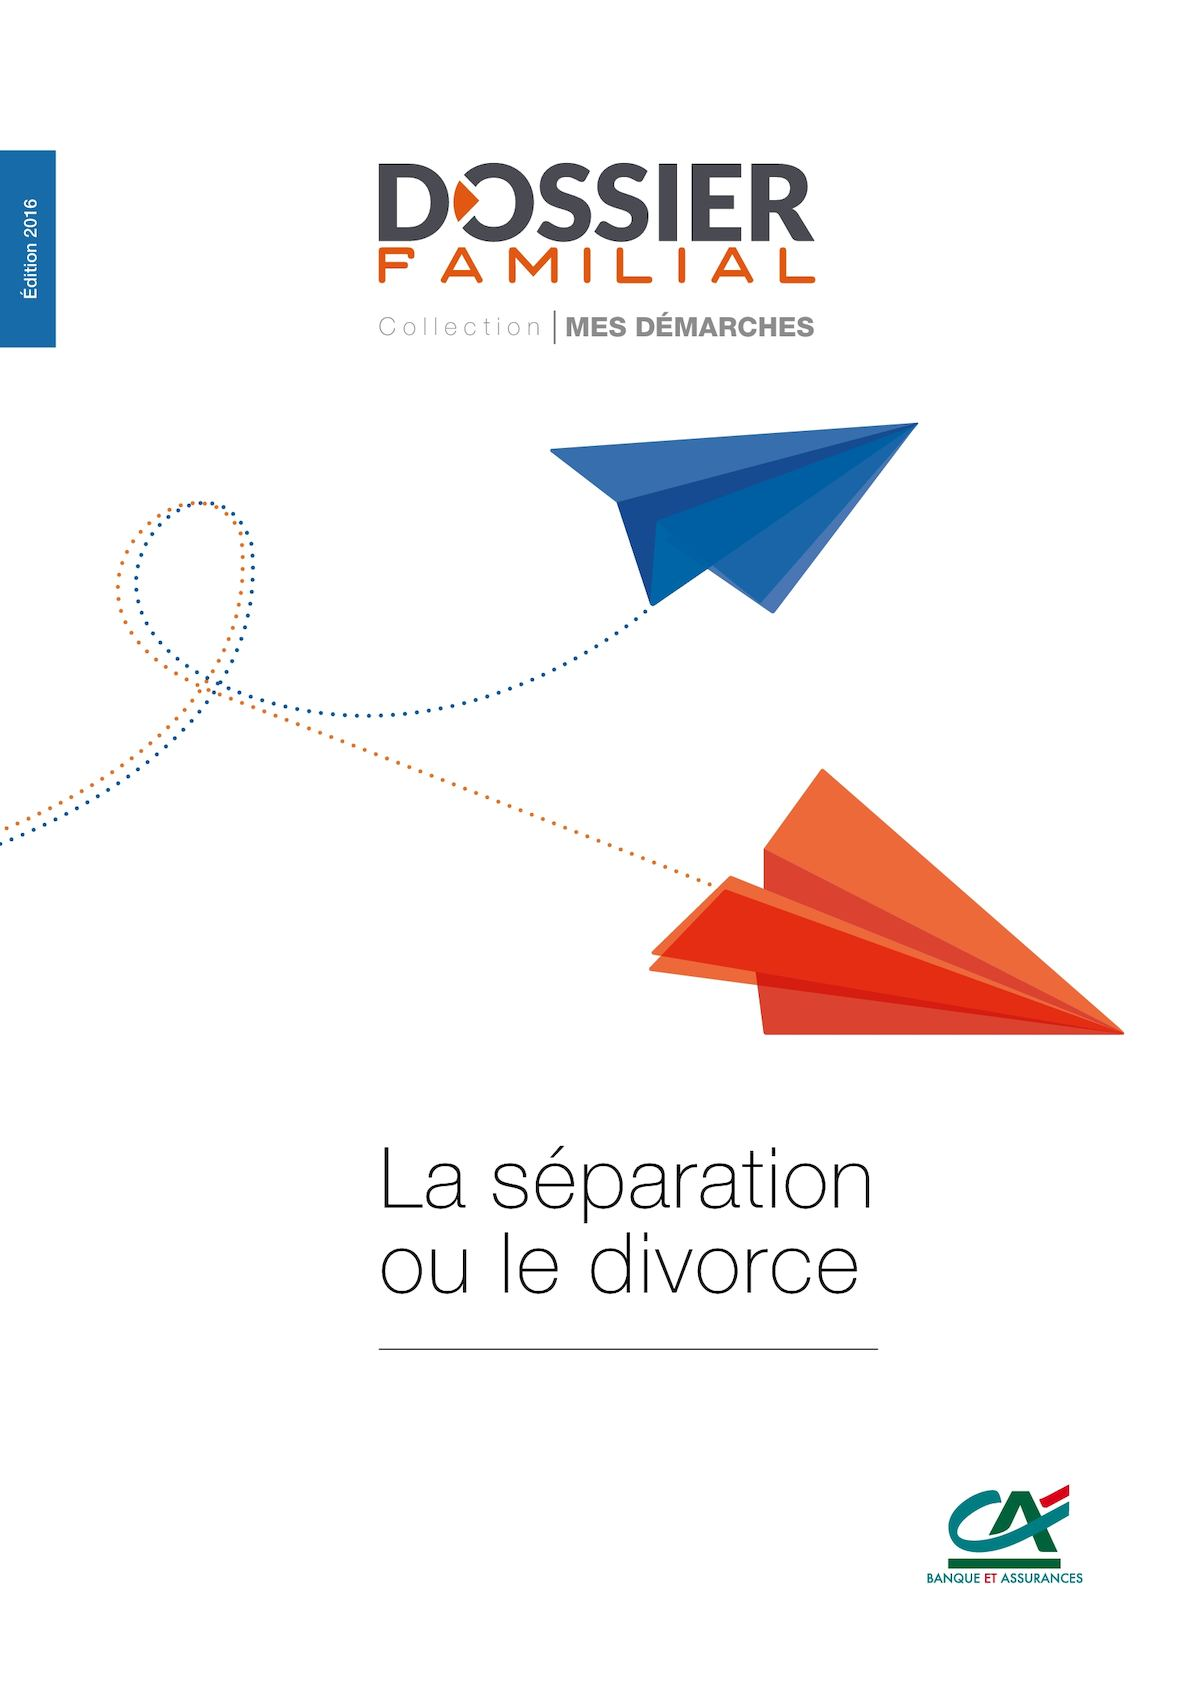 Calameo Dossier Familial Guide Divorce Separation 2017